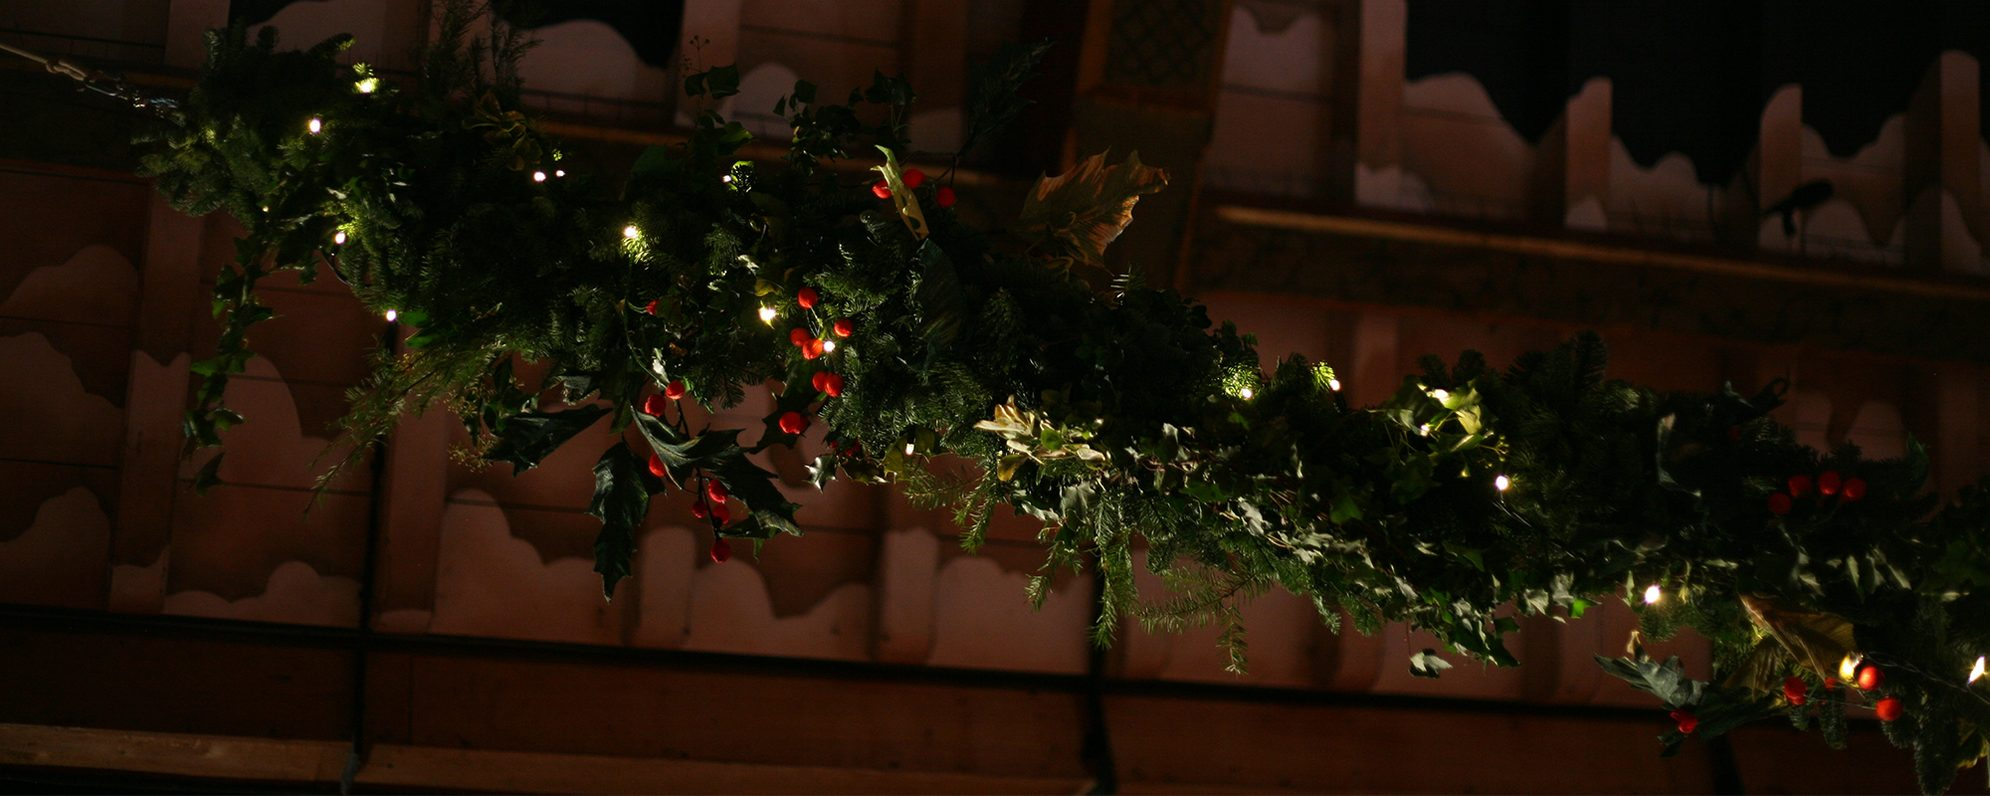 A holly bower with Christmas decorations